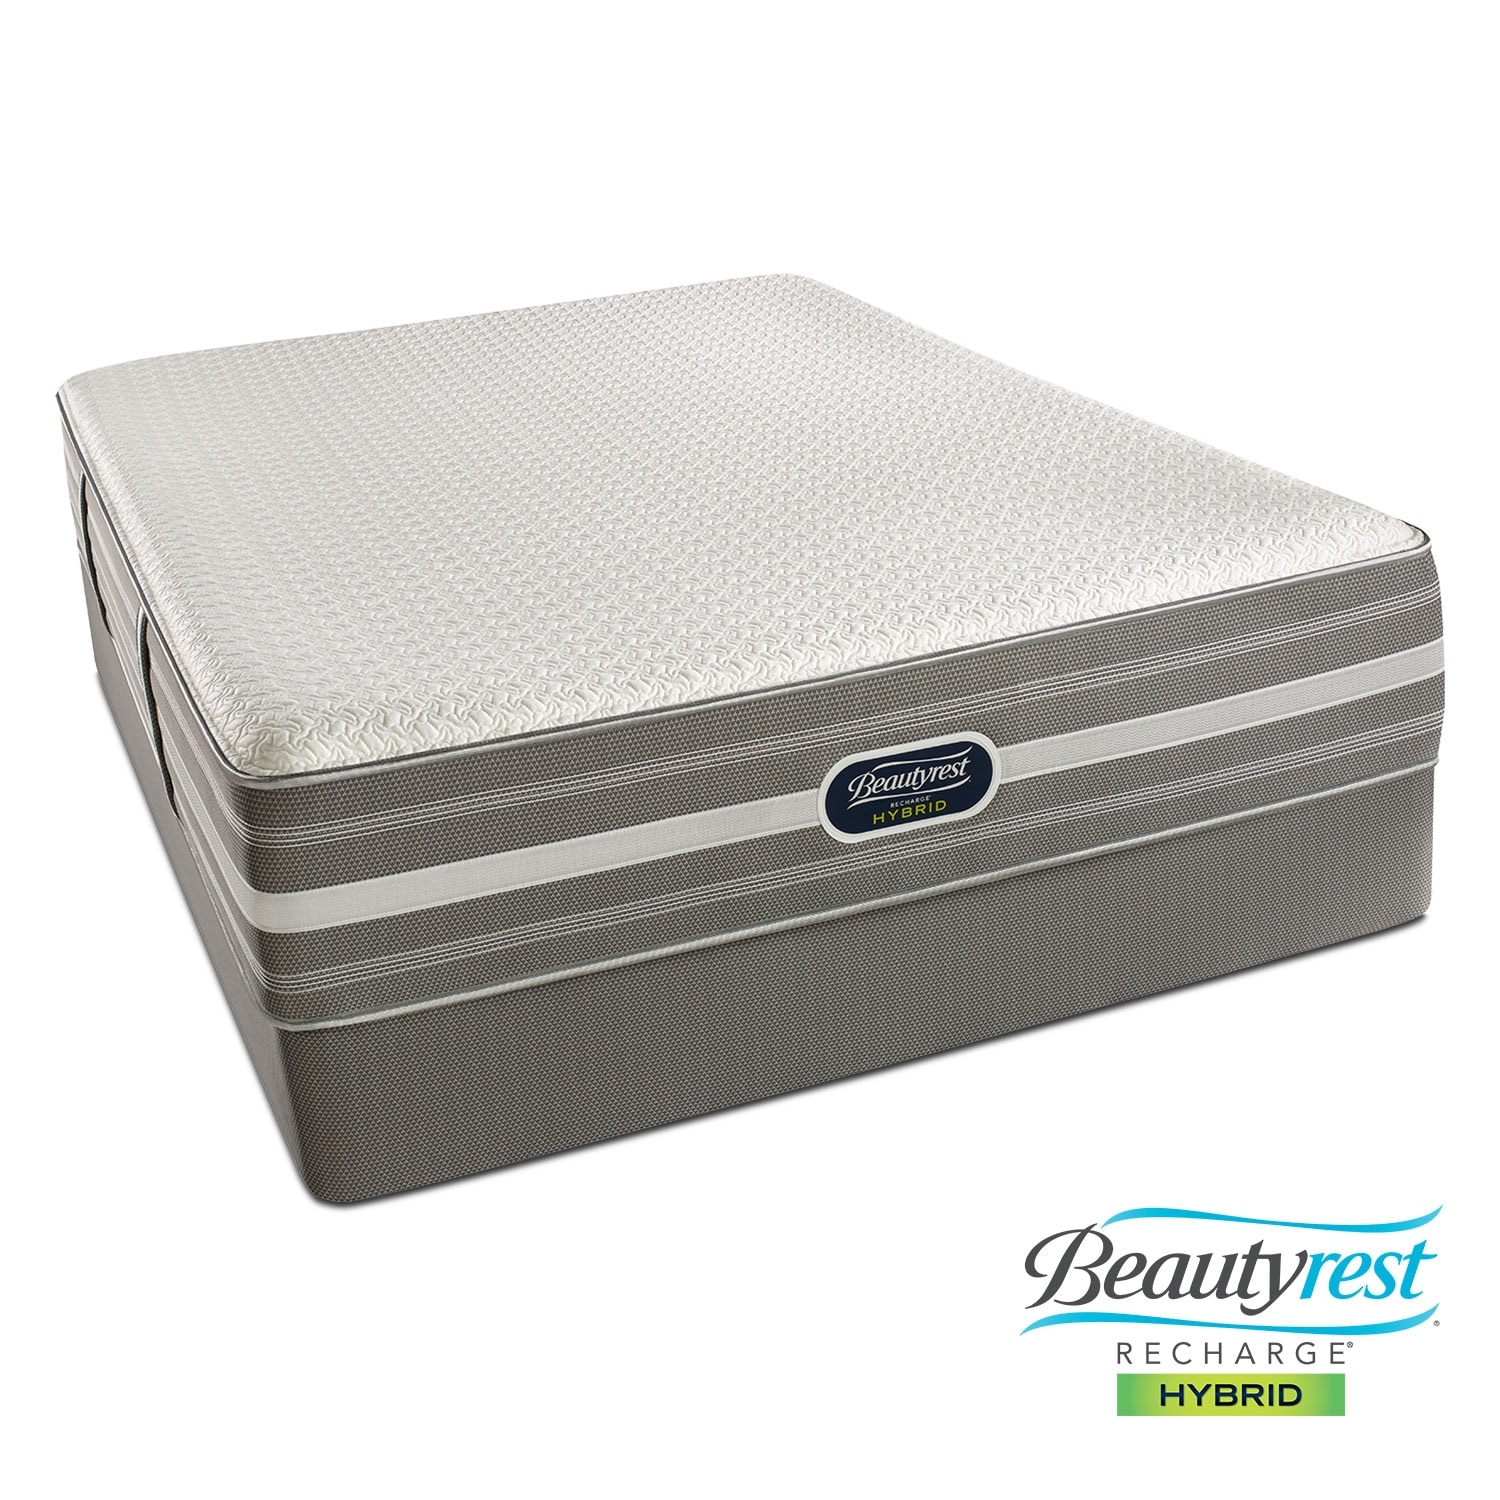 Mattresses and Bedding - Lamour Plush Twin XL Mattress and Foundation Set